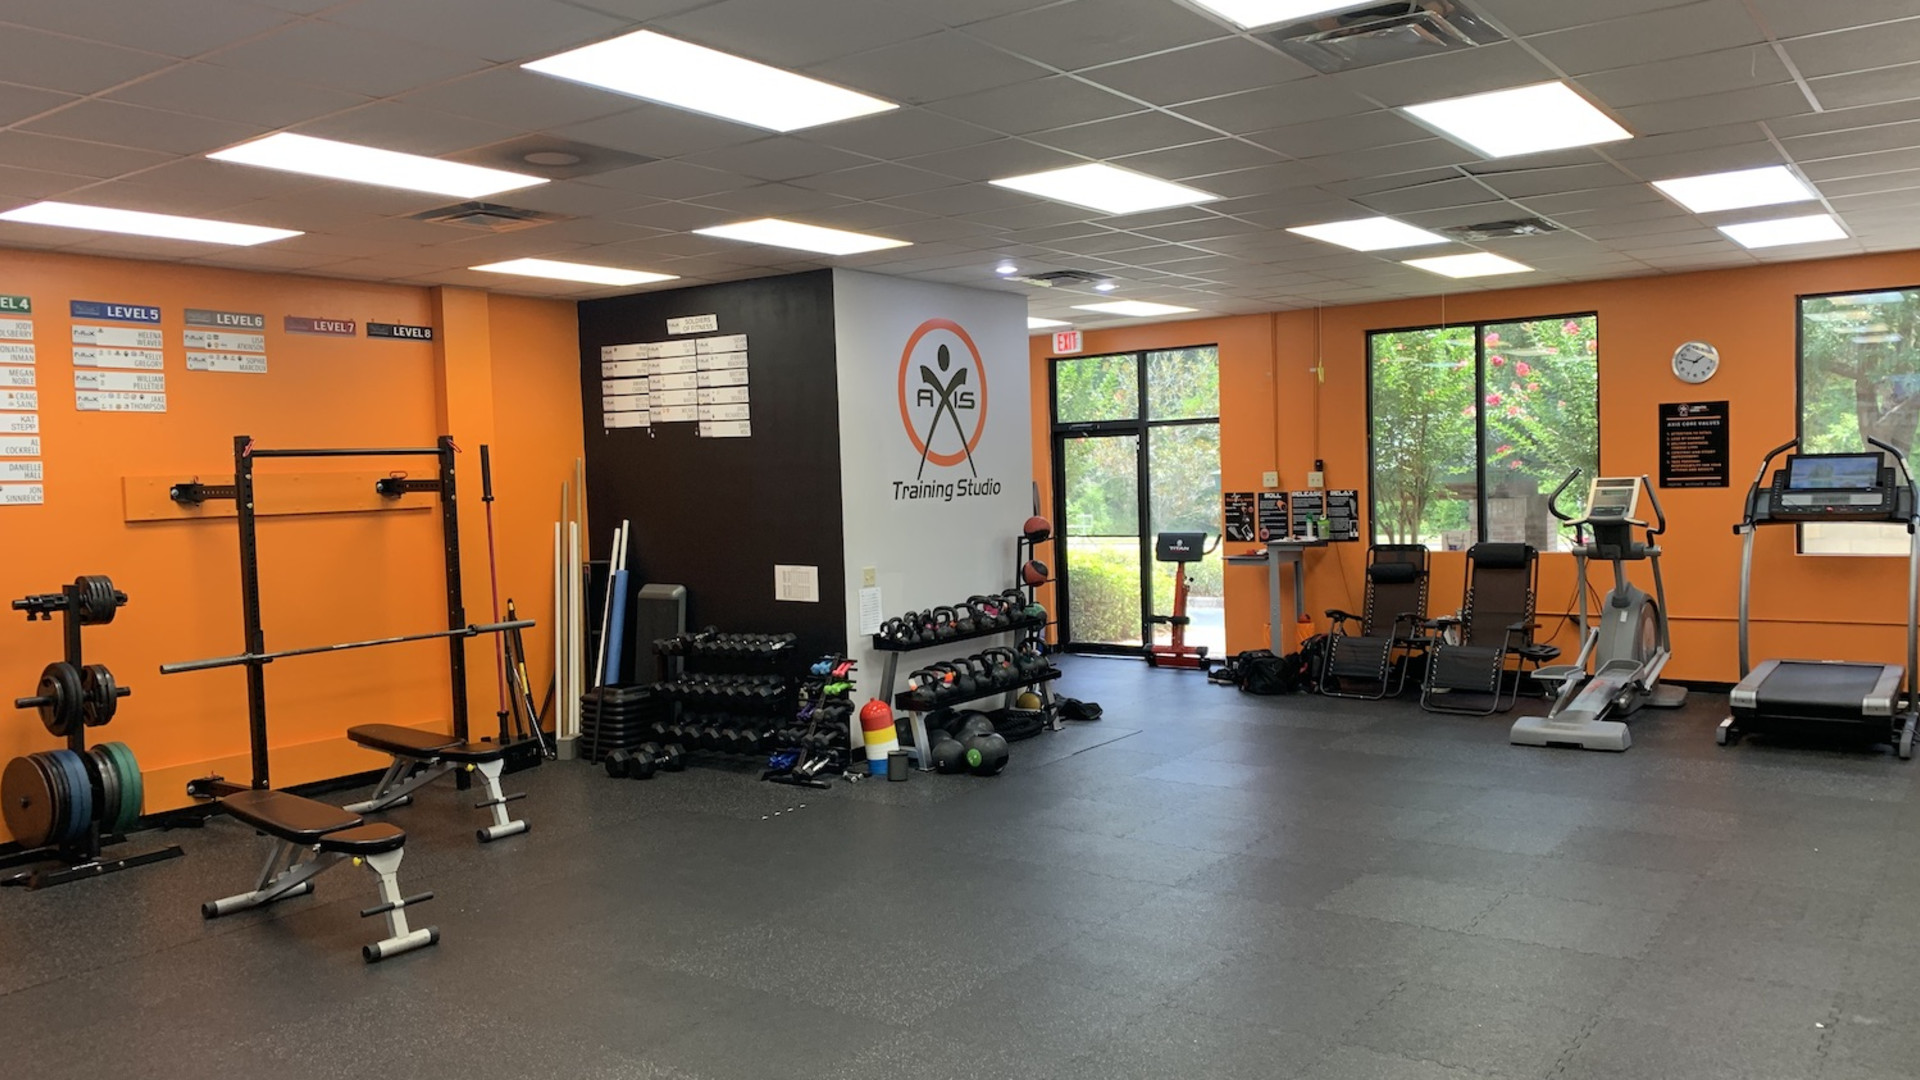 Axis Training Studio is Gainesville's leading personal training studio specializing in corrective exercise for people looking to reclaim their fitness. <strong>REQUEST MORE INFORMATION TODAY TO SCHEDULE A FREE CONSULTATION!</strong>